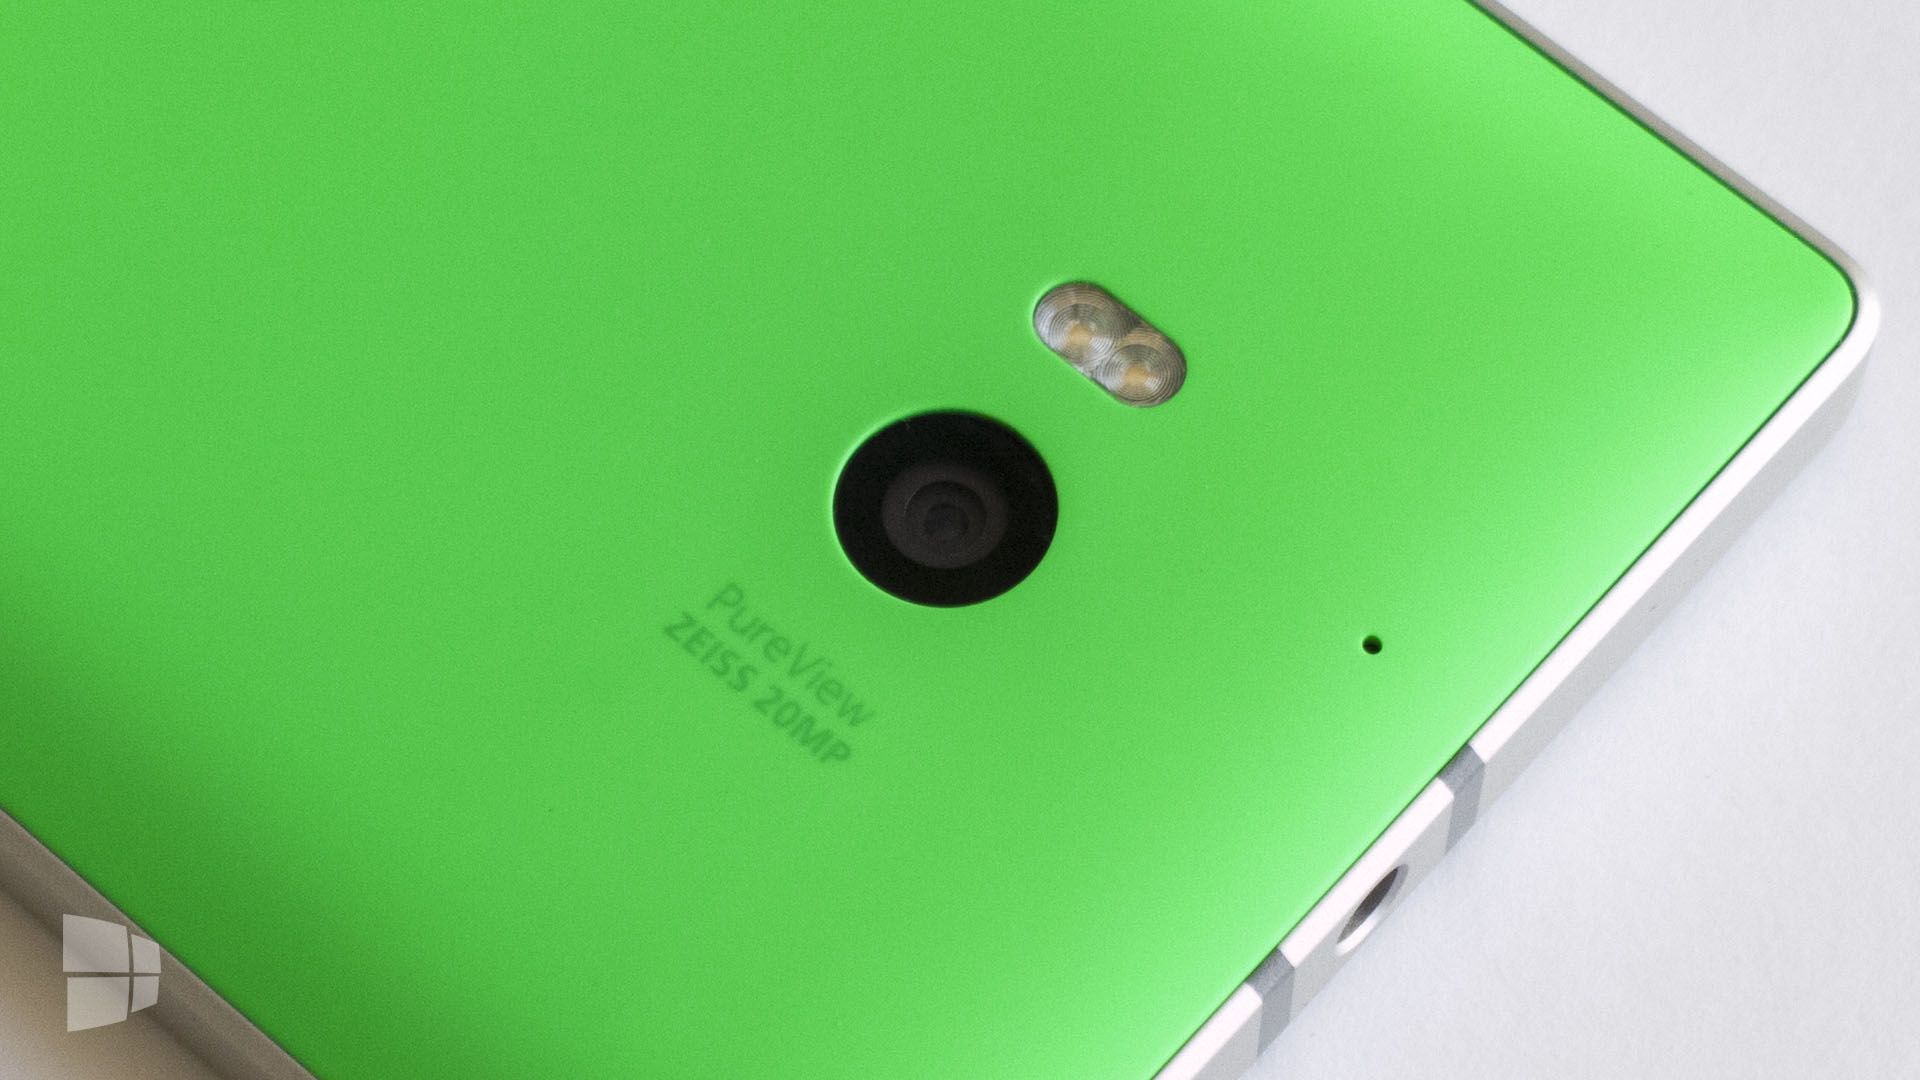 Nokia-Lumia-930-Camera-PureView